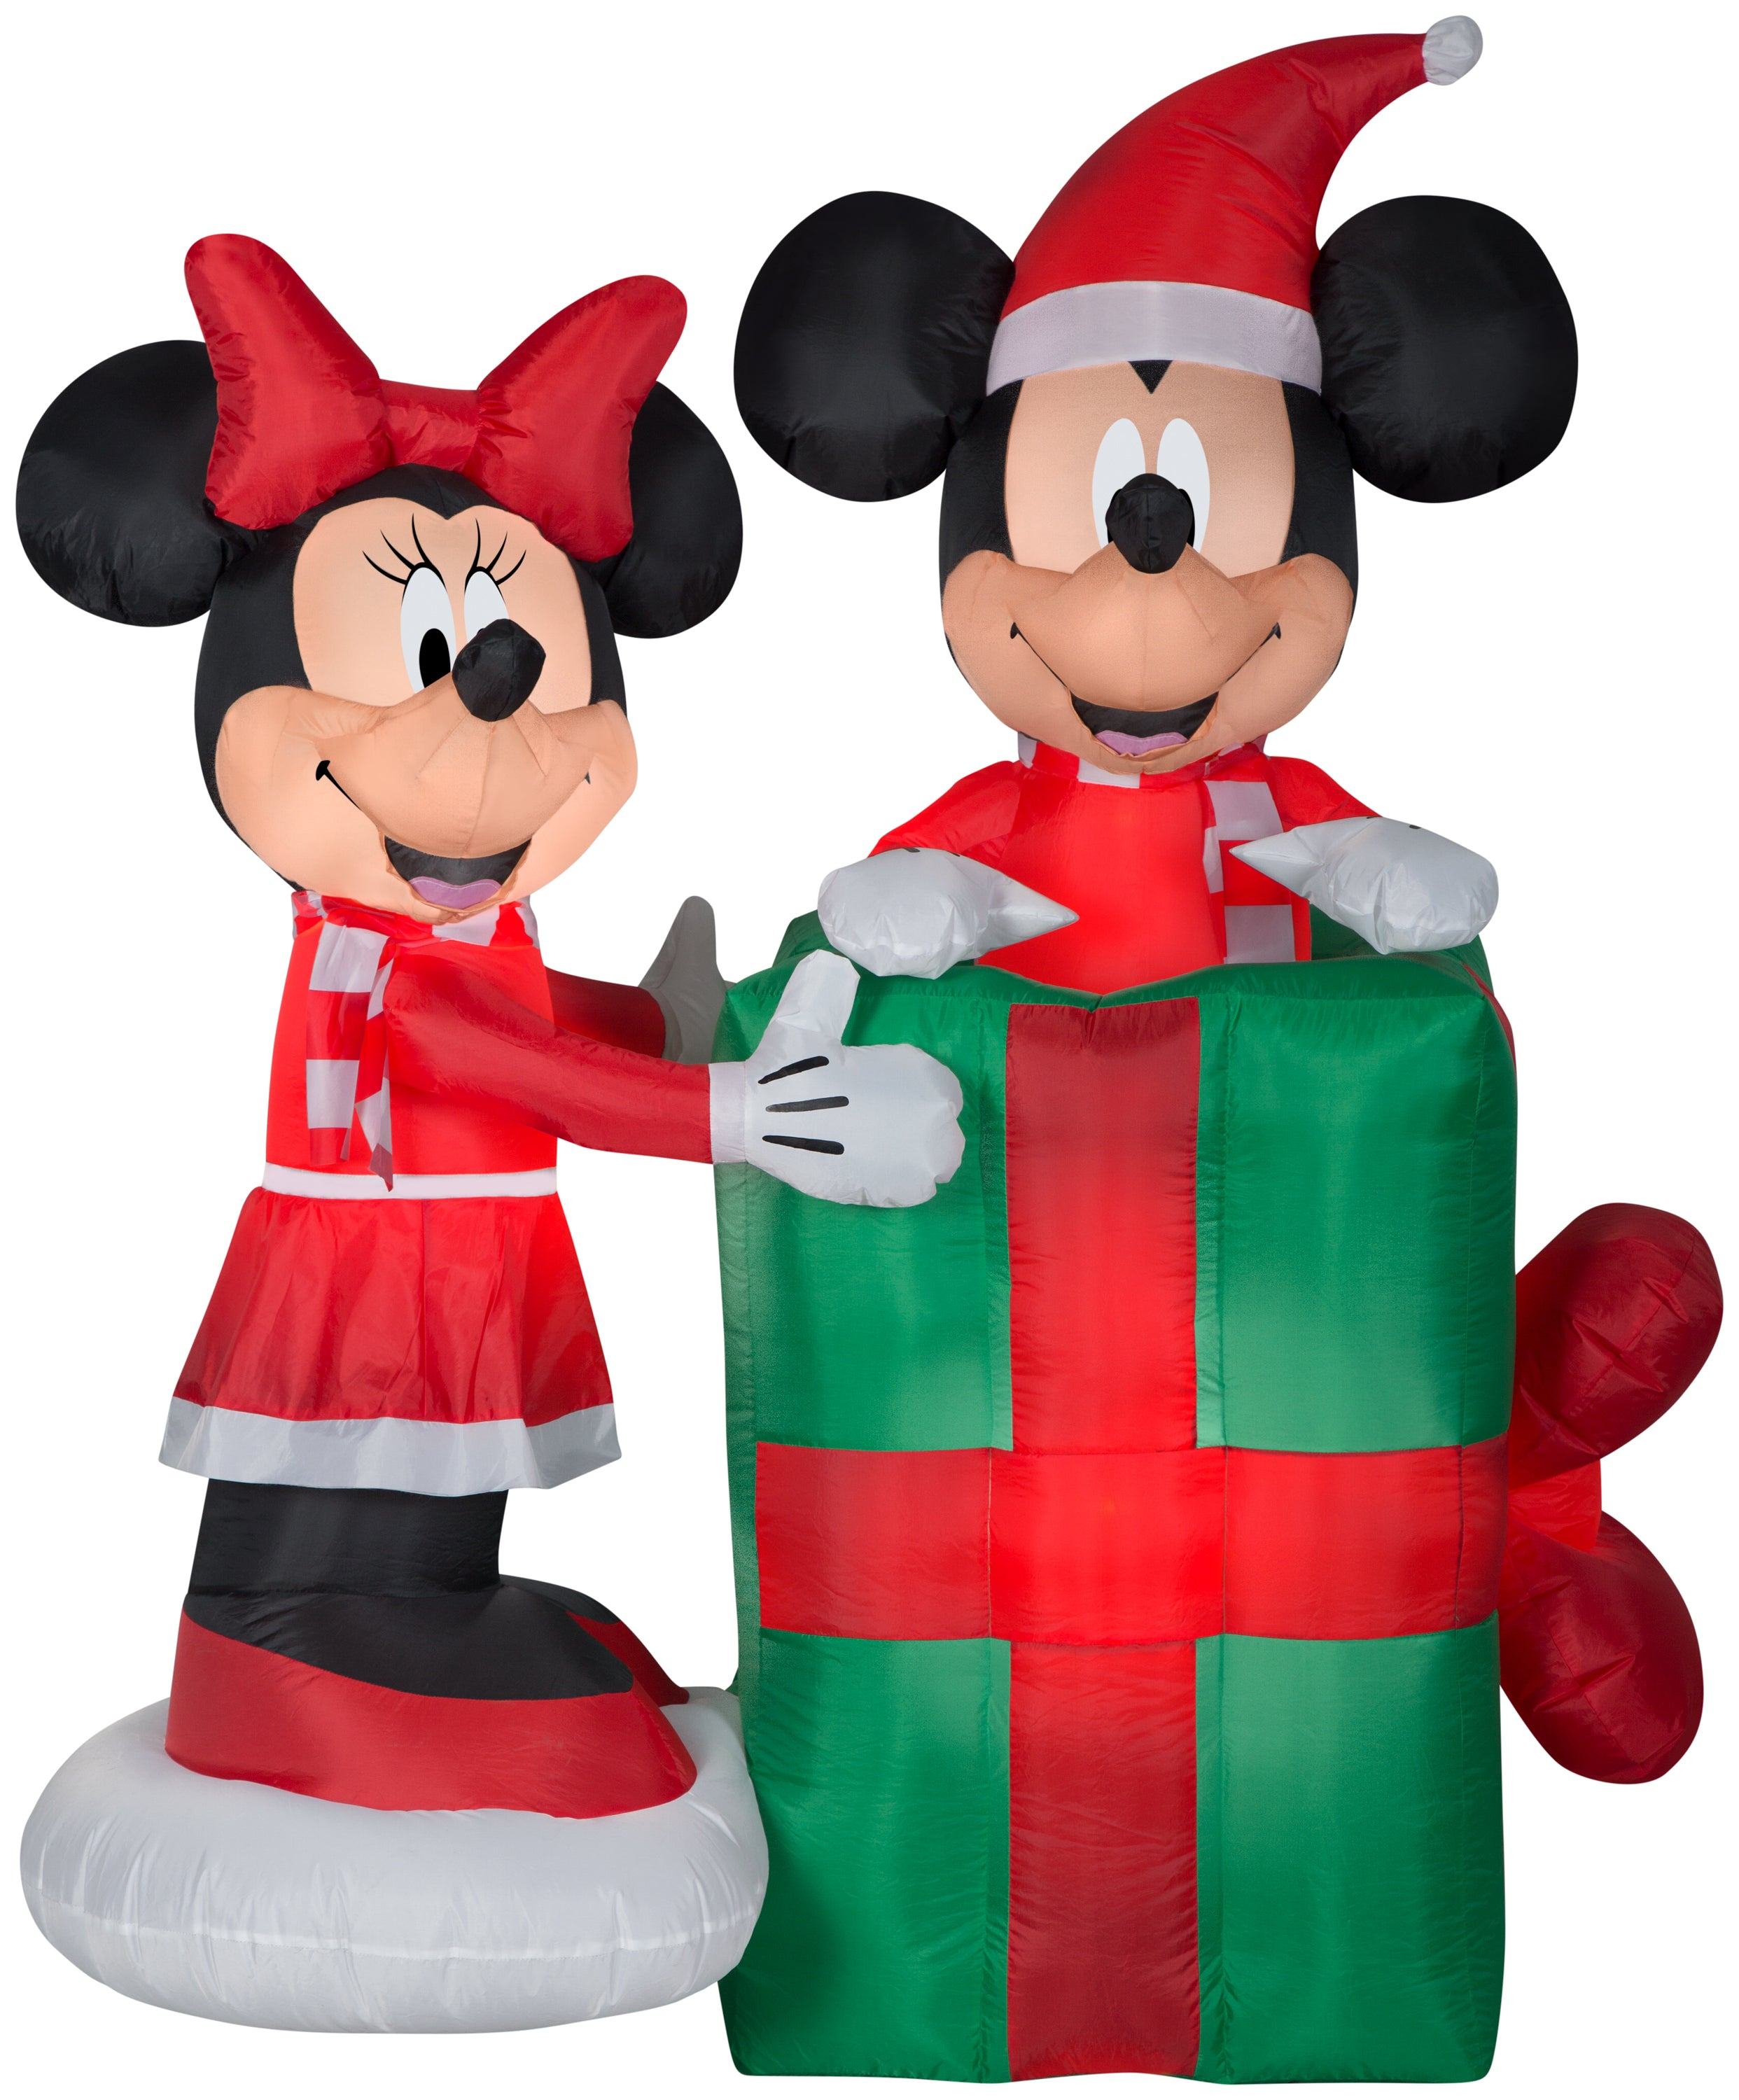 5' Animated Airblown Inflatable Minnie with Mickey Popping Out of Present Scene